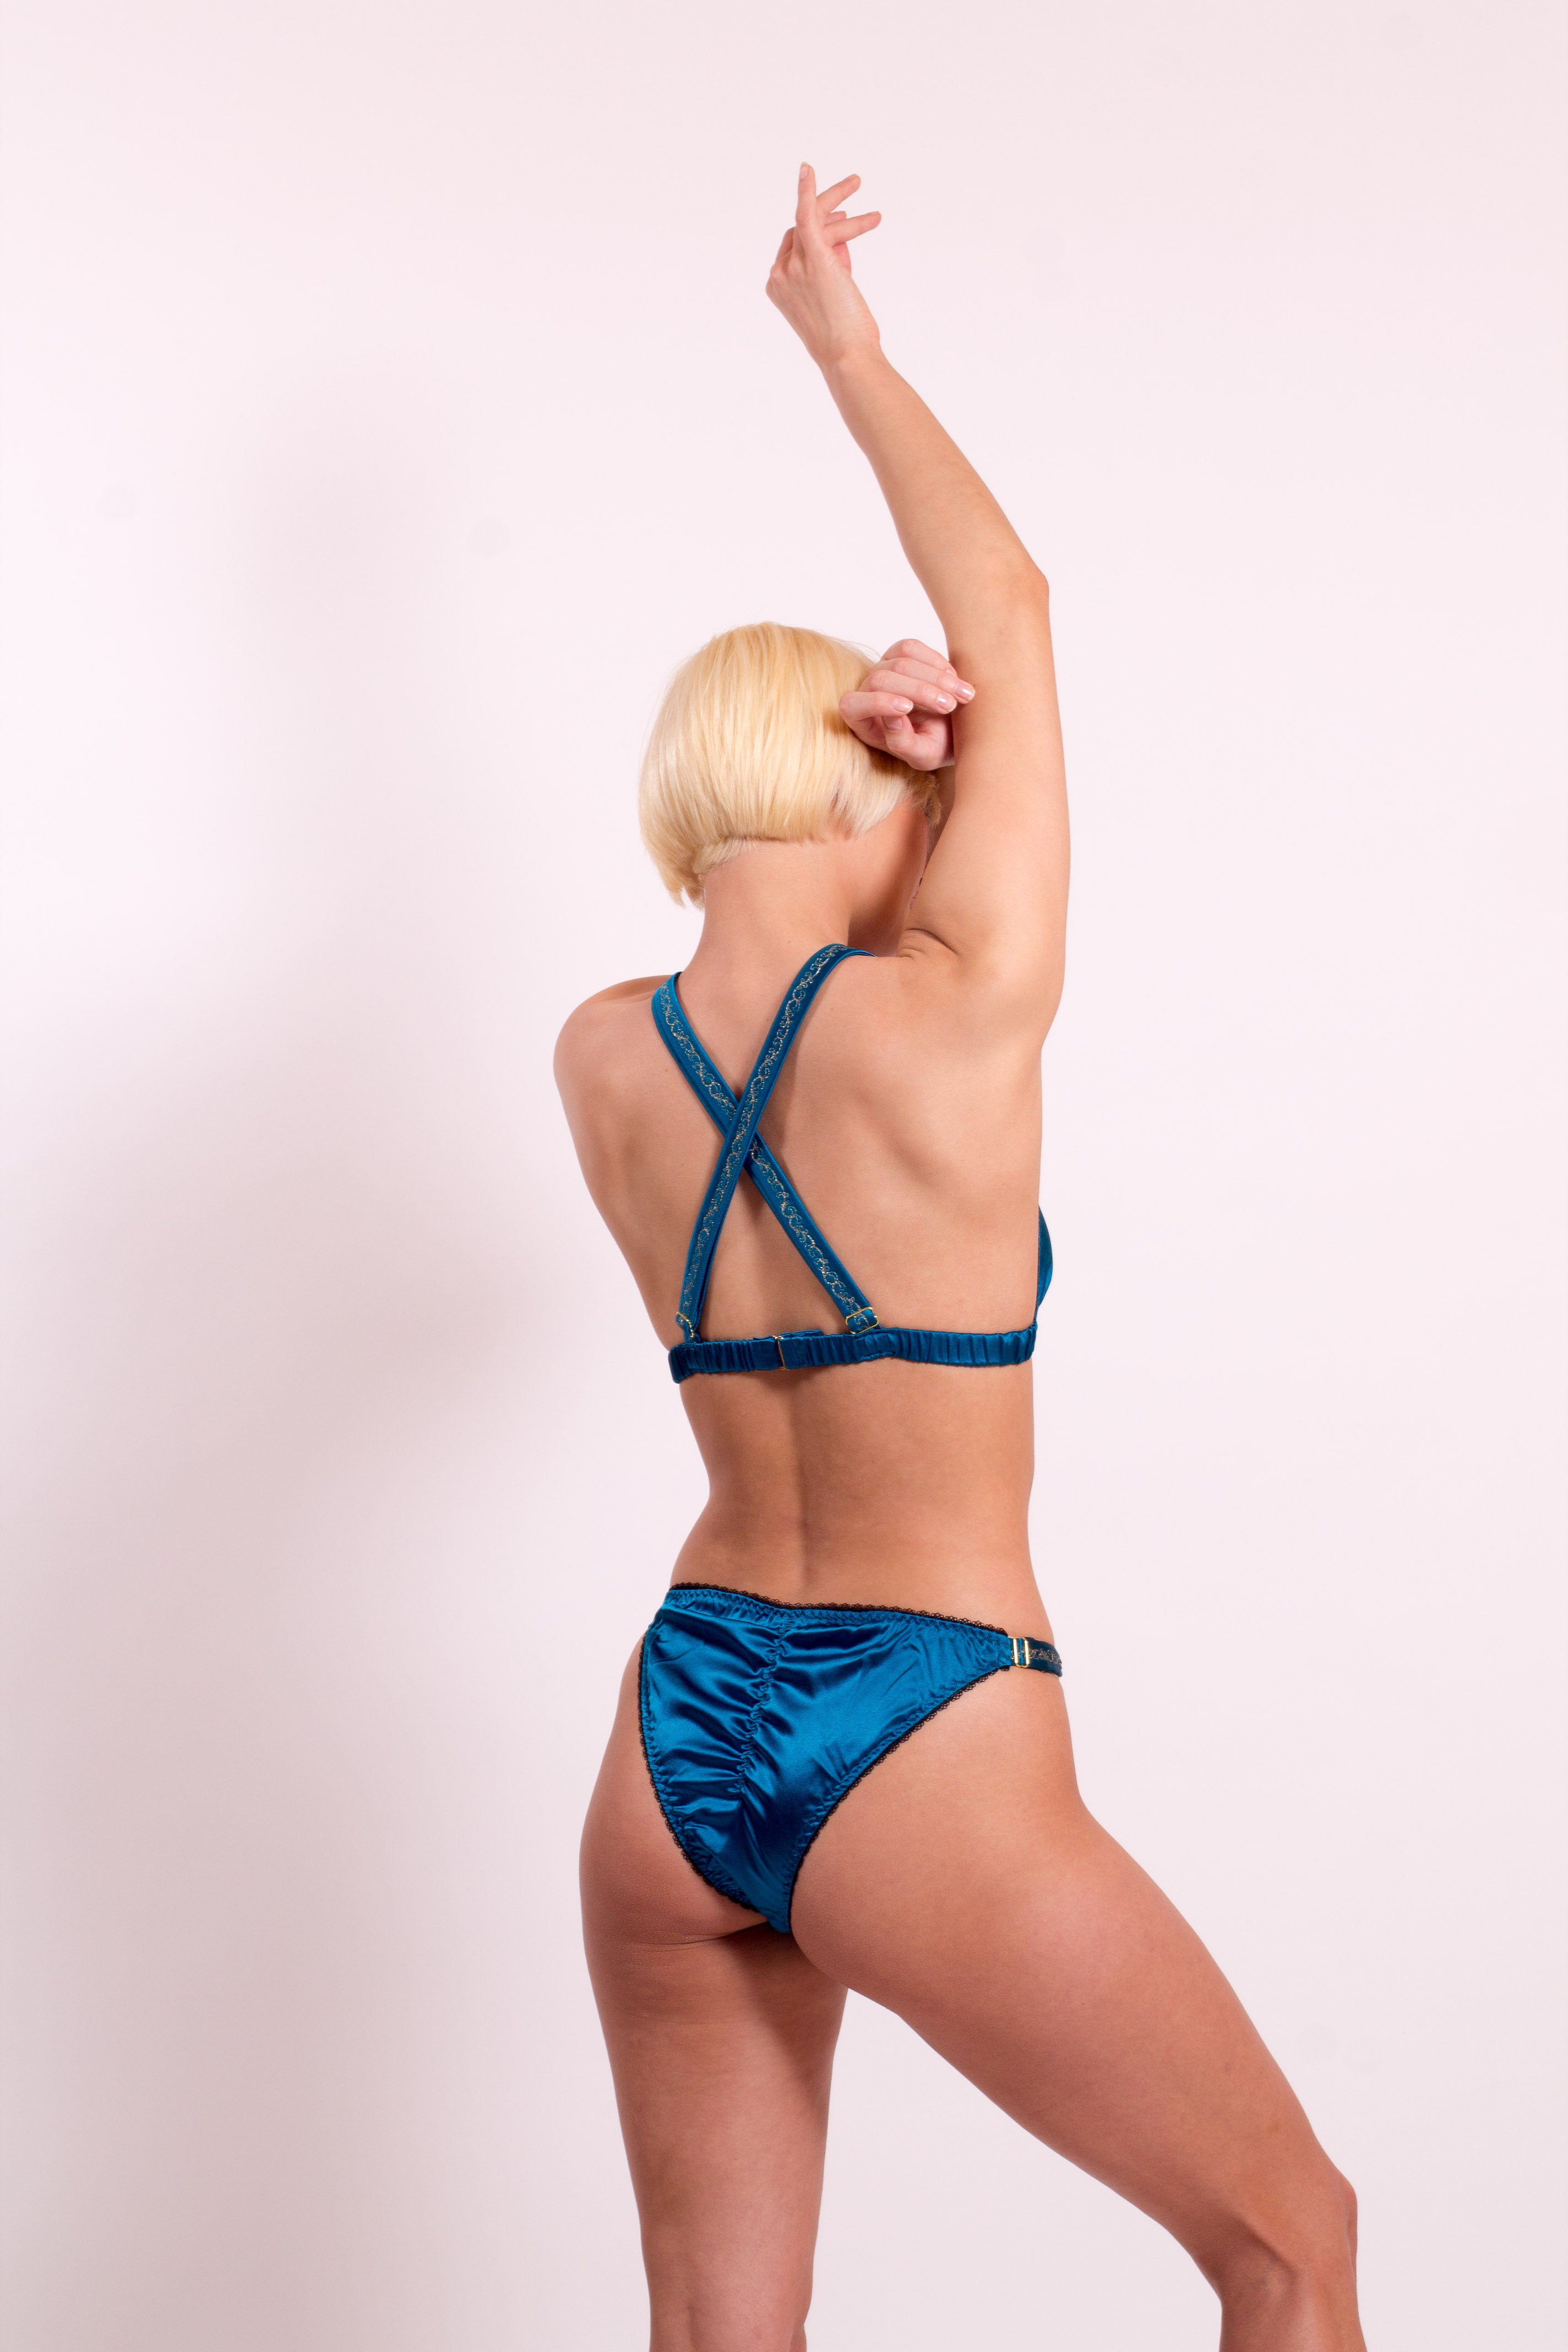 79ff640b39 Maia Silk Satin panties with adjustable straps. 20 colours to choose from